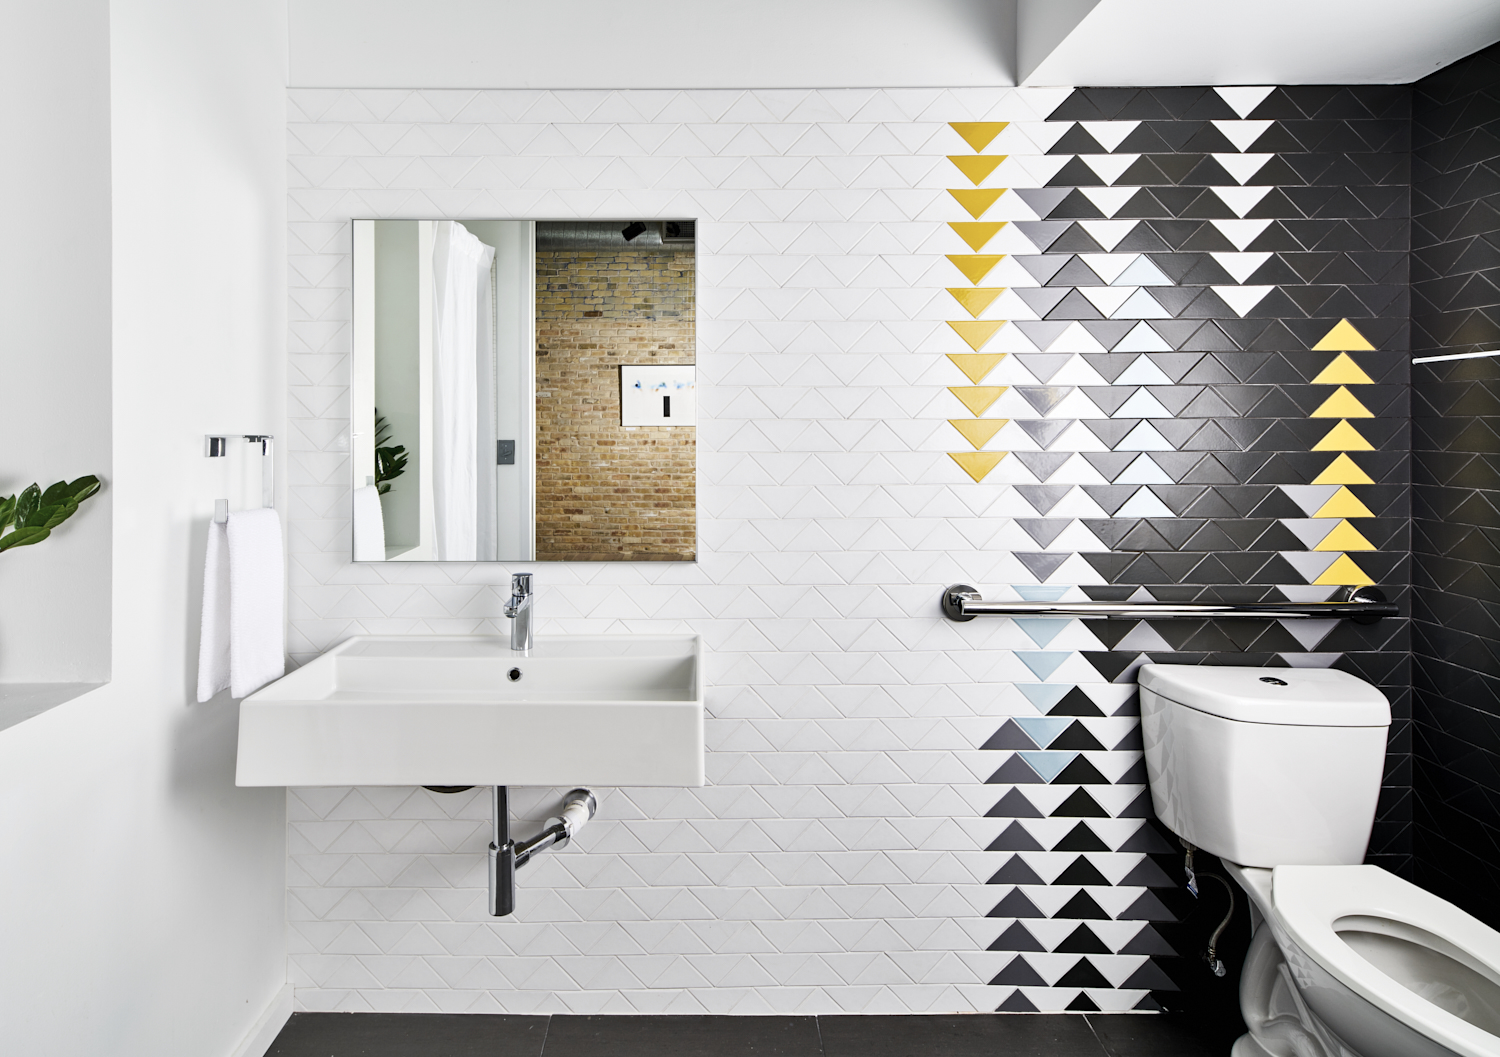 2018_Q2_image_commercial_OLA_Austin_office_bathroom_wall_triangle_4_blend_white_wash_magnetite_daffodil_crater_lake_rainy_day_full.jpg?mtime=20180610100249#asset:265292